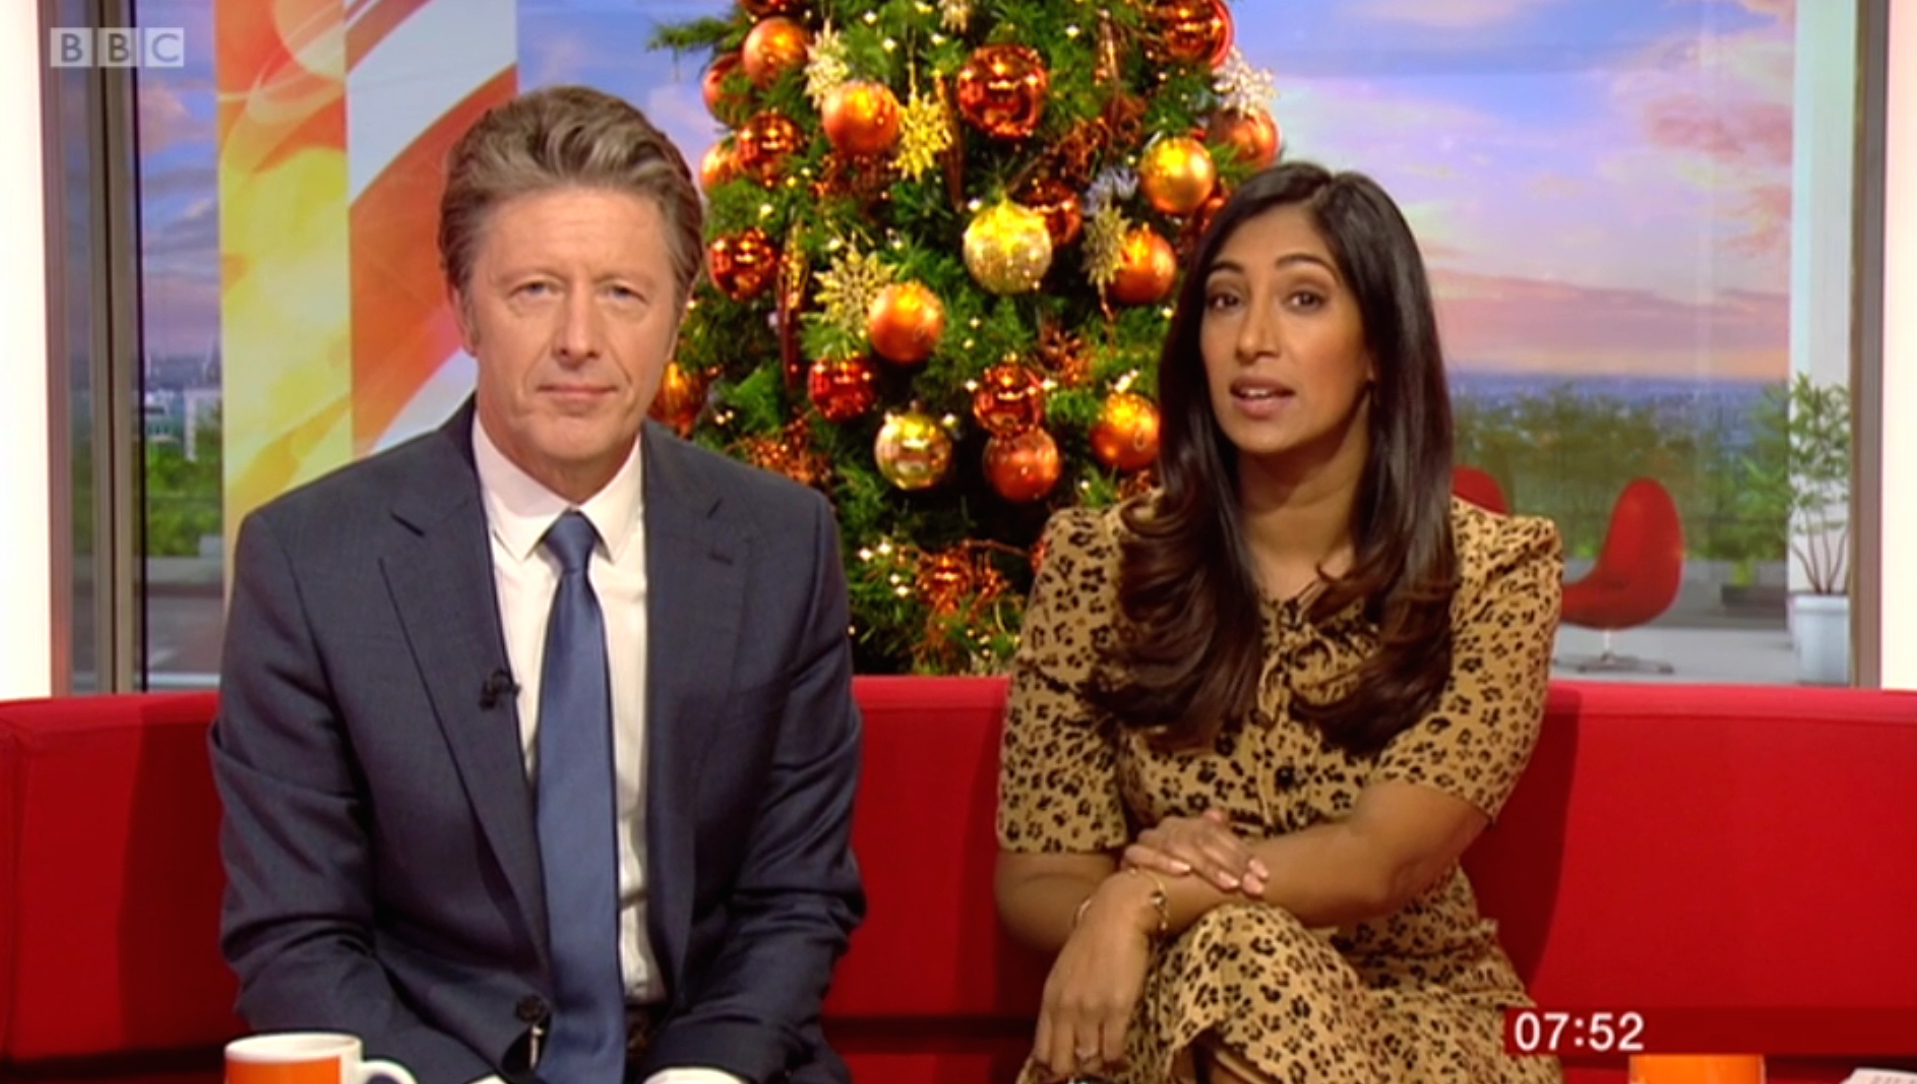 Above: BBC Breakfast anchor presenters Charlie Stayt and Tina Daheley.